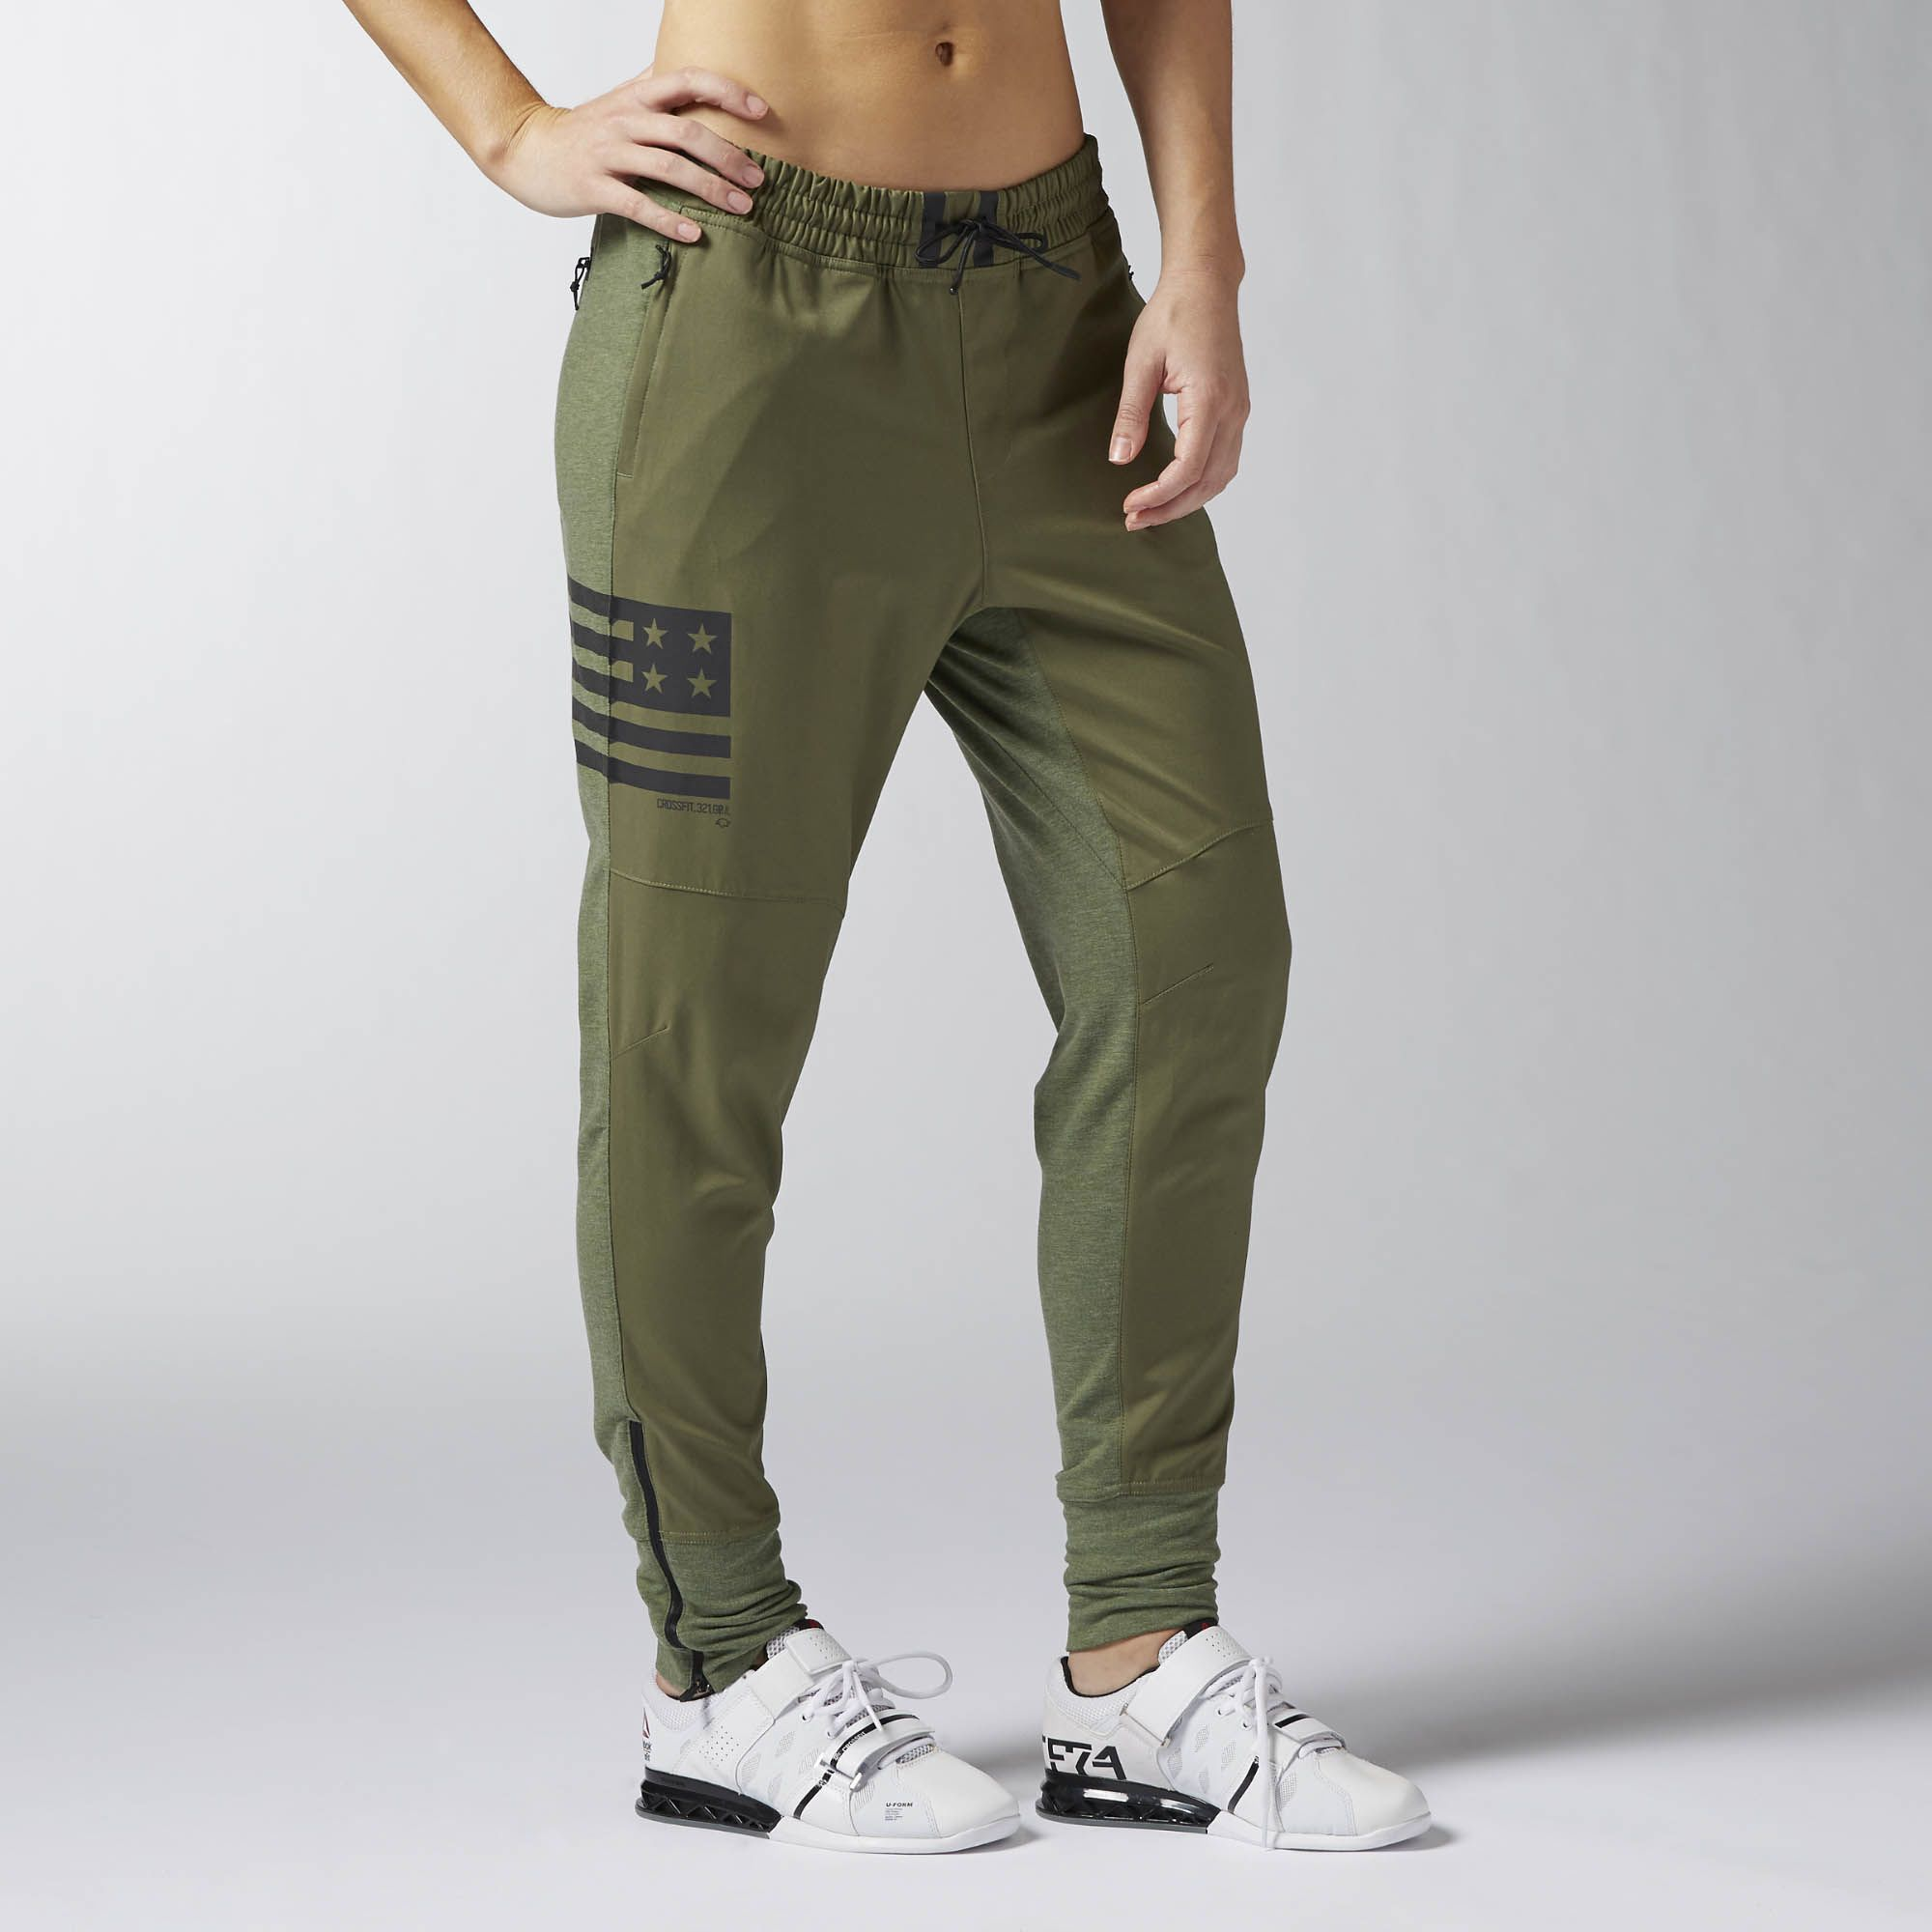 3521ed0a89c208 reebok crossfit joggers womens silver cheap   OFF36% The Largest ...